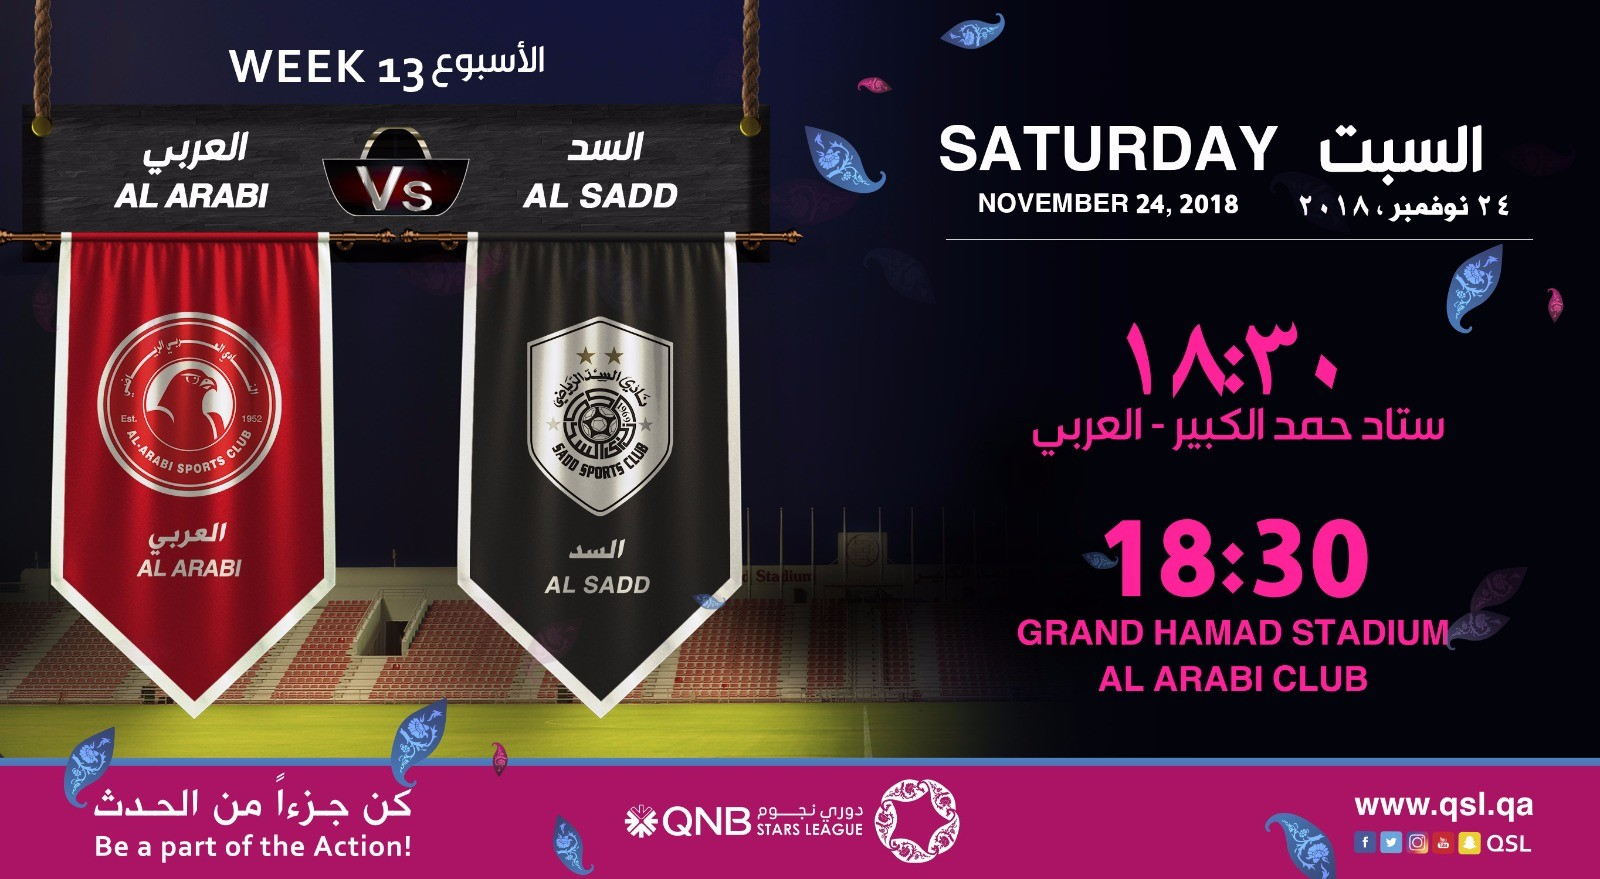 QNB Stars League Week 13 — Al Arabi vs Al Sadd